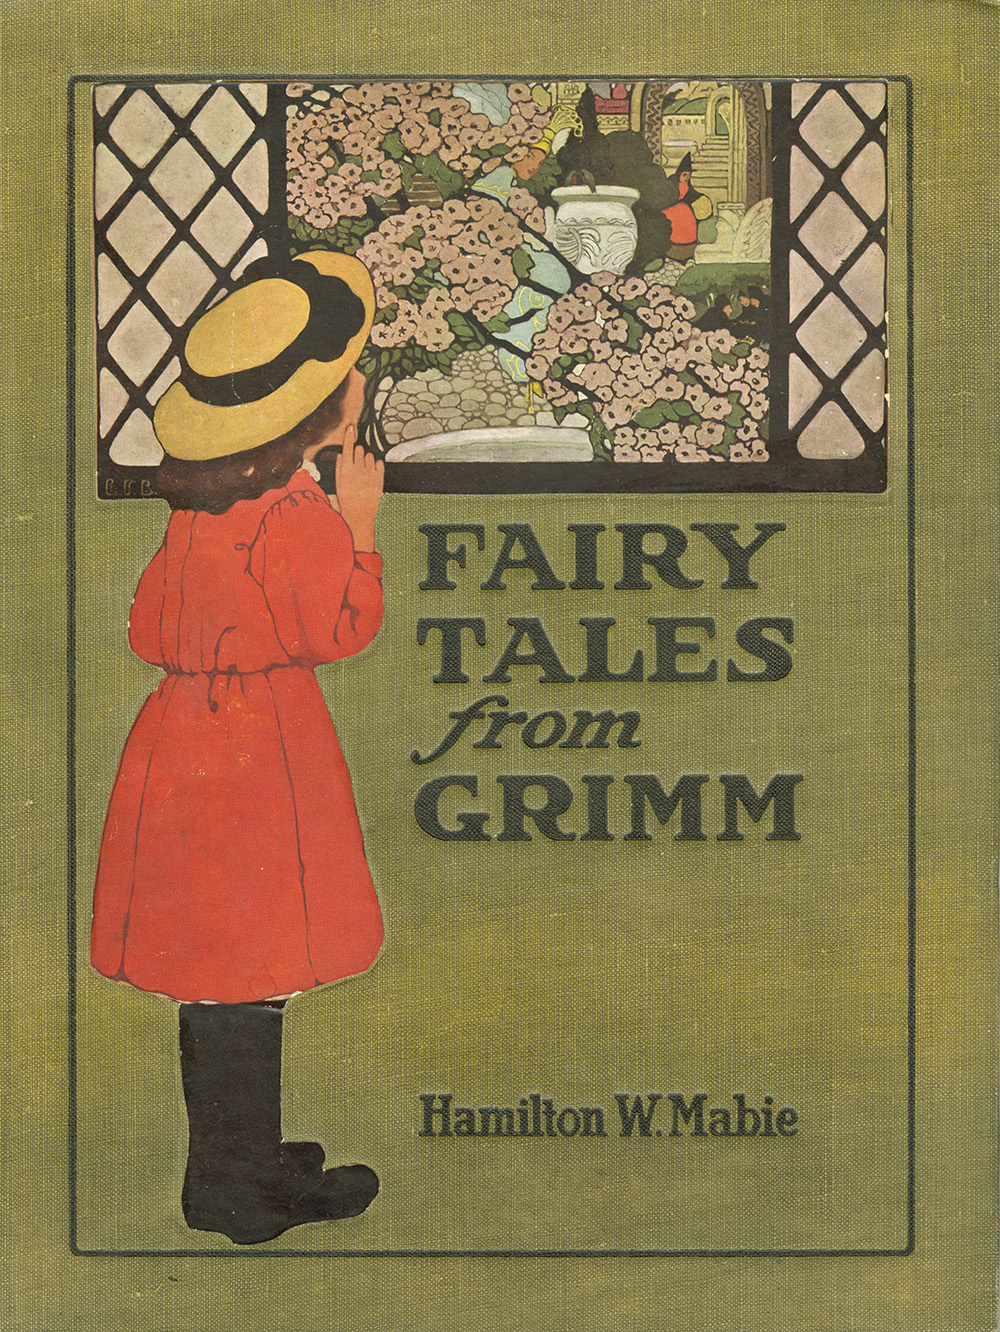 Ethel Franklin Betts, cover illustration, Fairy Tales from Grimm, Edward Stern & Company, 1909.